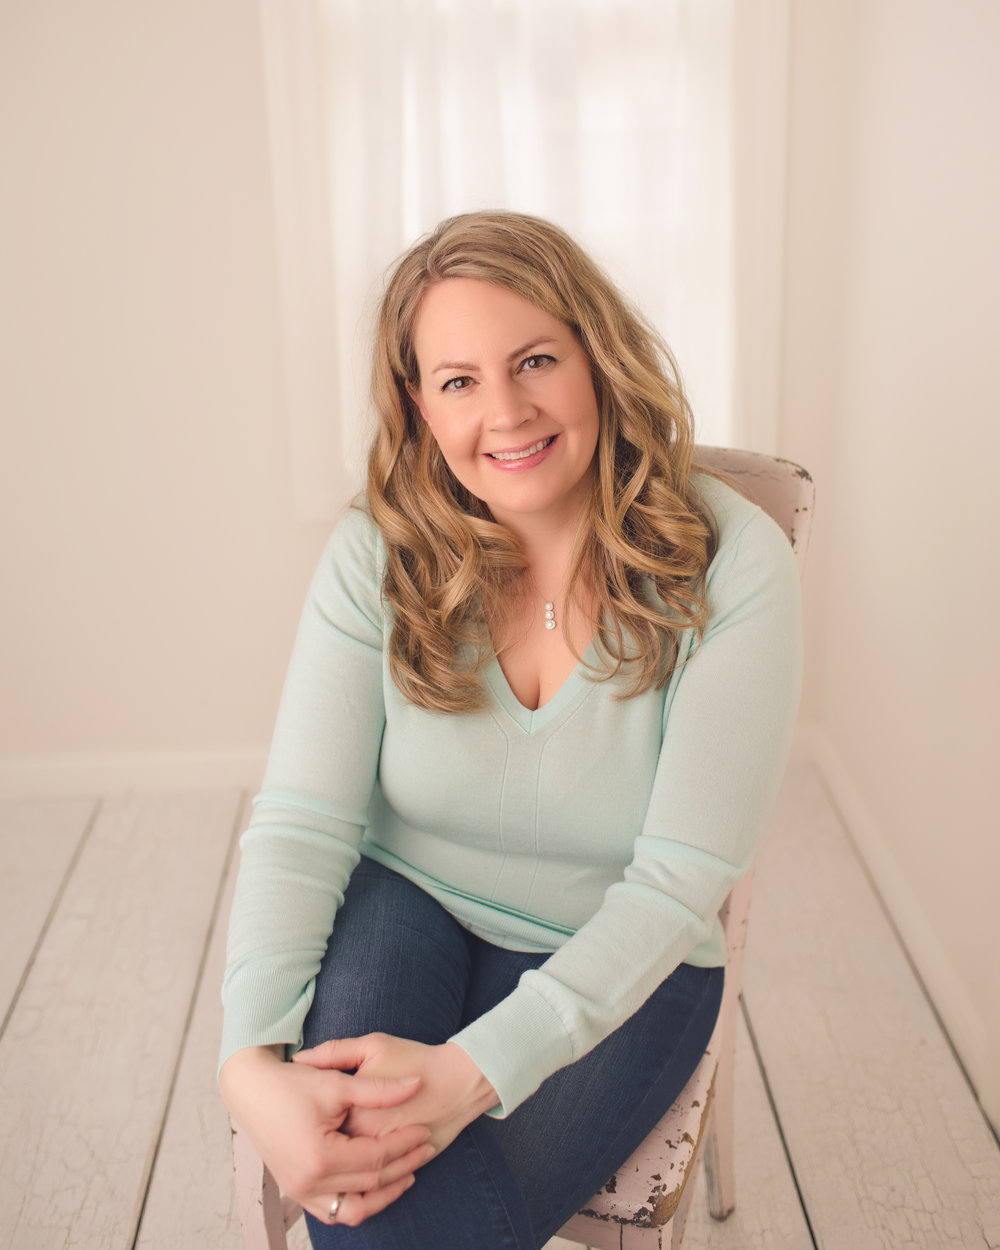 "Today's Guest: Becky ""Clean Mama"" Rapinchuk - Becky Rapinchuk is known as ""Clean Mama."" She's a cleaning and homekeeping expert, business owner and author of the books, Clean Mama's Guide to a Healthy Home, 2019, Simply Clean, 2017, The Organically Clean Home, 2014. She's also a wife and mom to three, a business owner, and a former art teacher. Her blog helps people discover new ways to do the mundane tasks of homekeeping and to bring a little more fun into the process. She's been featured everywhere from Oprah Magazine to Good Housekeeping and more."